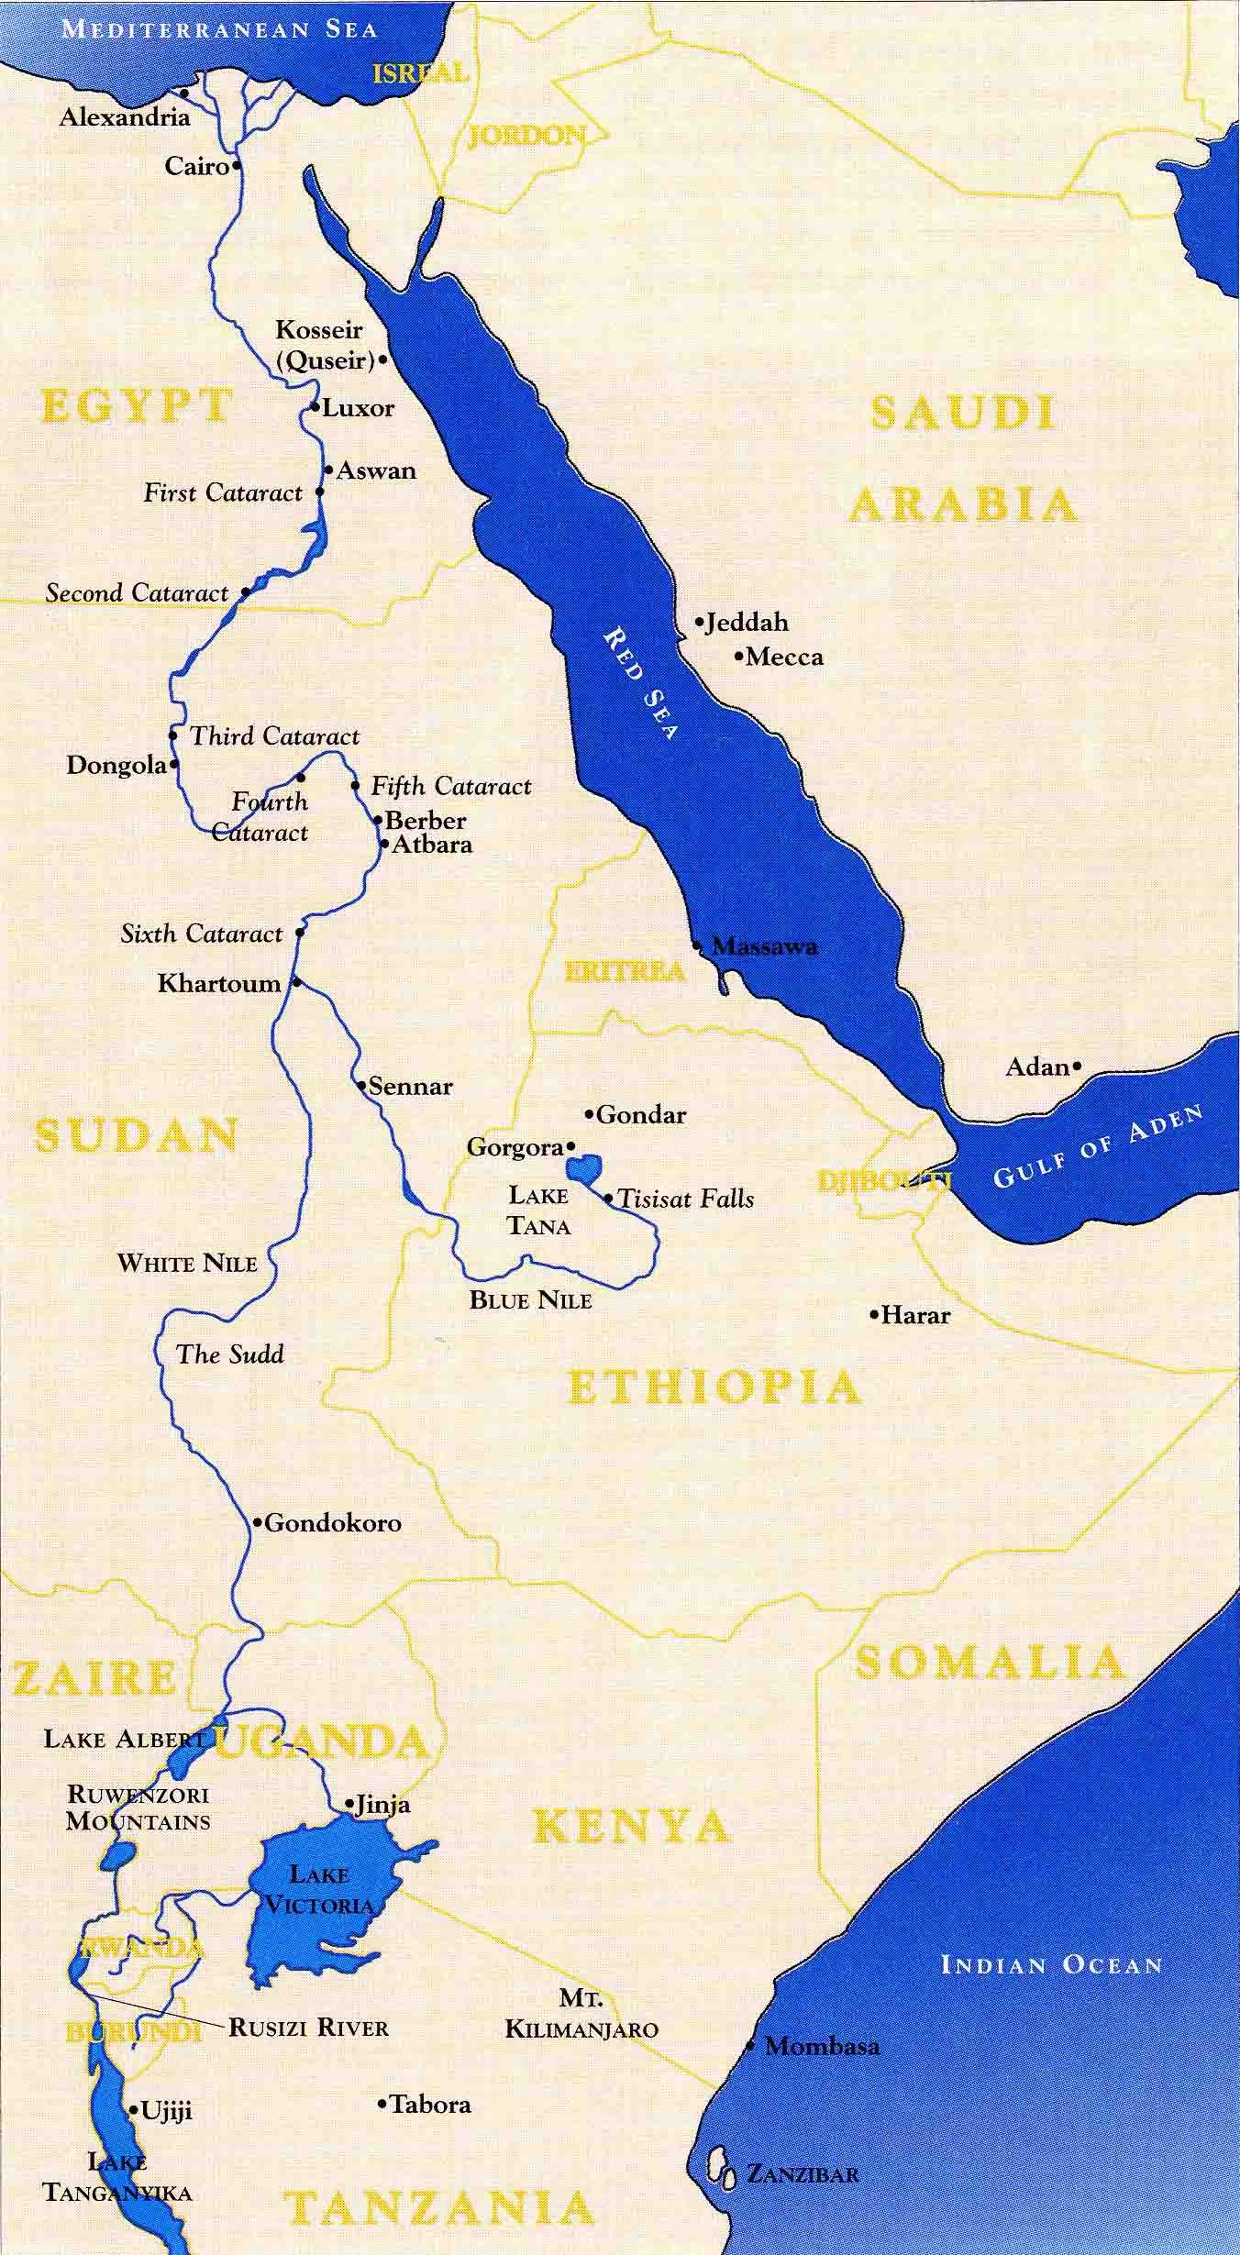 geographical features of the nile Geography the ancient egyptians thought of egypt as being divided into two types of land, the 'black land' and the 'red land' the 'black land' was the fertile land on the banks of the nile the ancient egyptians used this land for growing their crops this was the only land in ancient egypt that could be farmed bec.